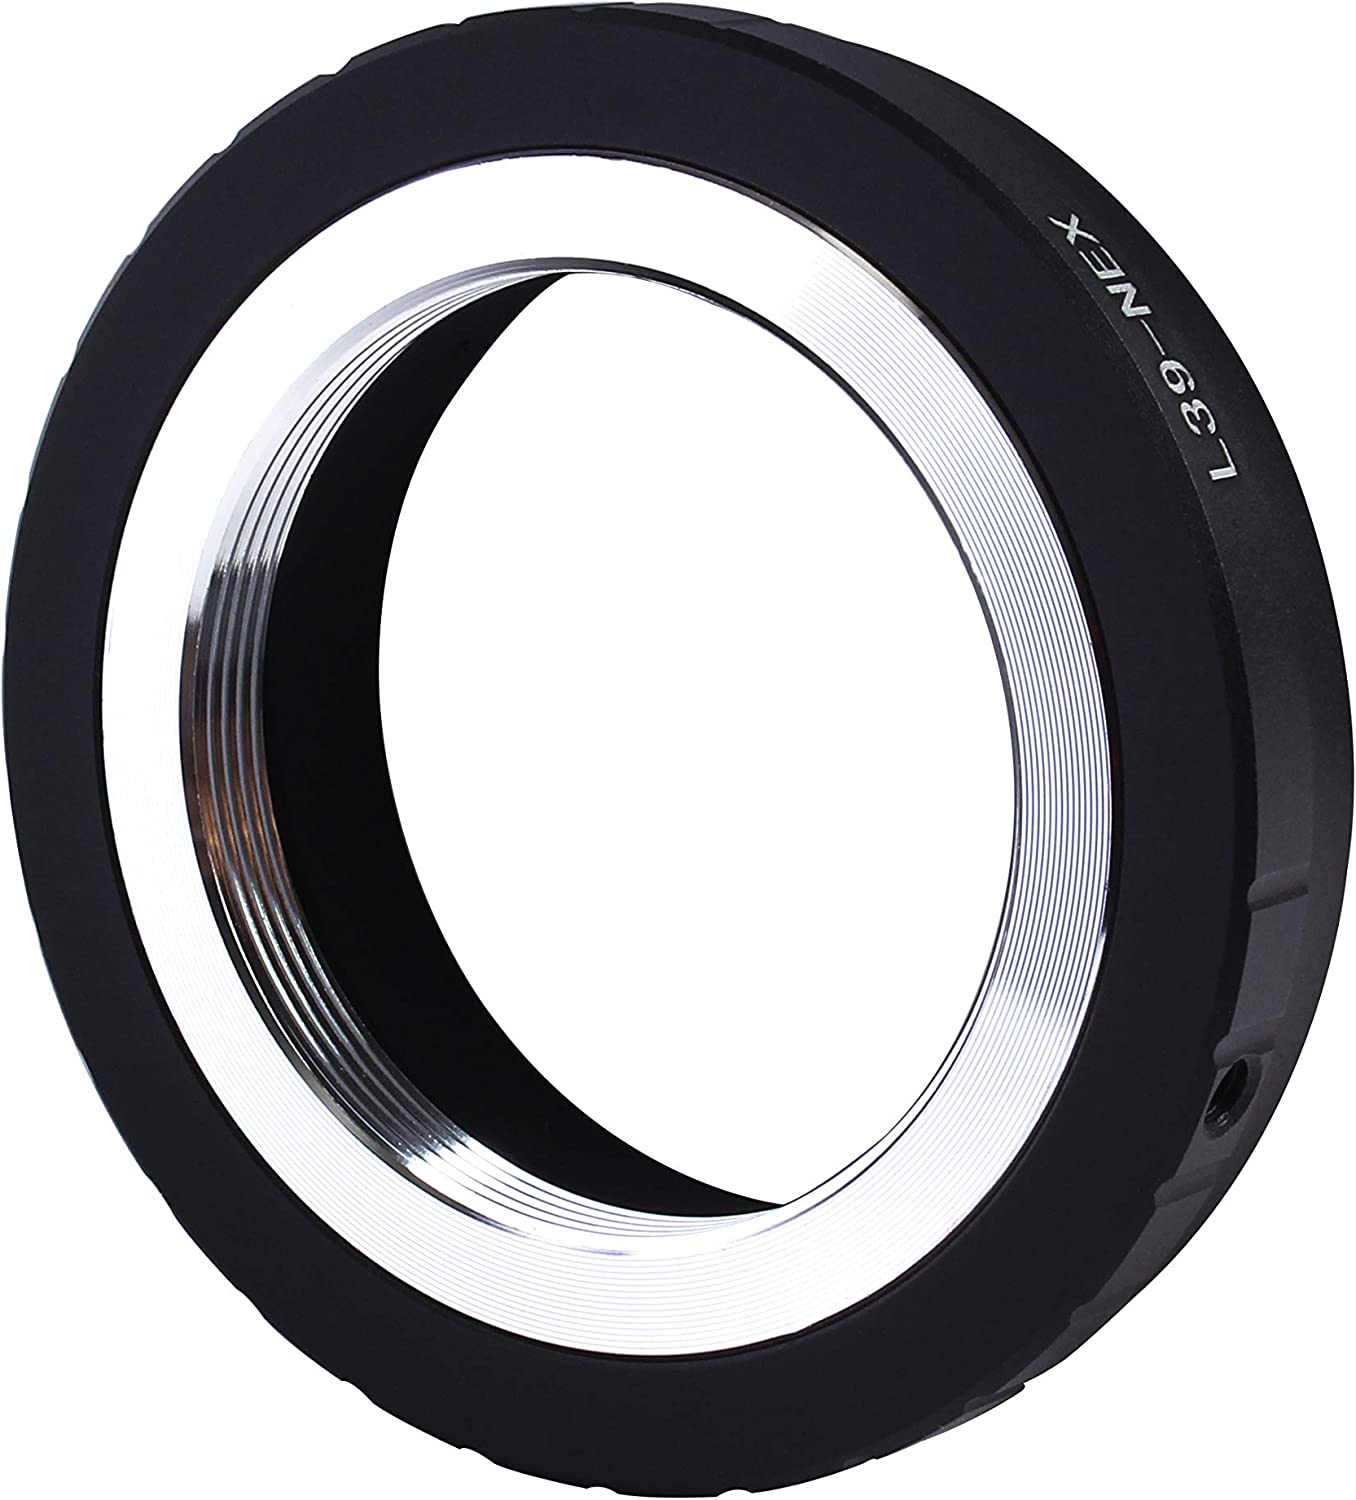 Compatible with for Leica L39 M39 39mm Mount Lens to /& for Canon EOS M Mount Mirrorless Camera M1 M2 M3 M5 M6 M10 M50 M100 Camera